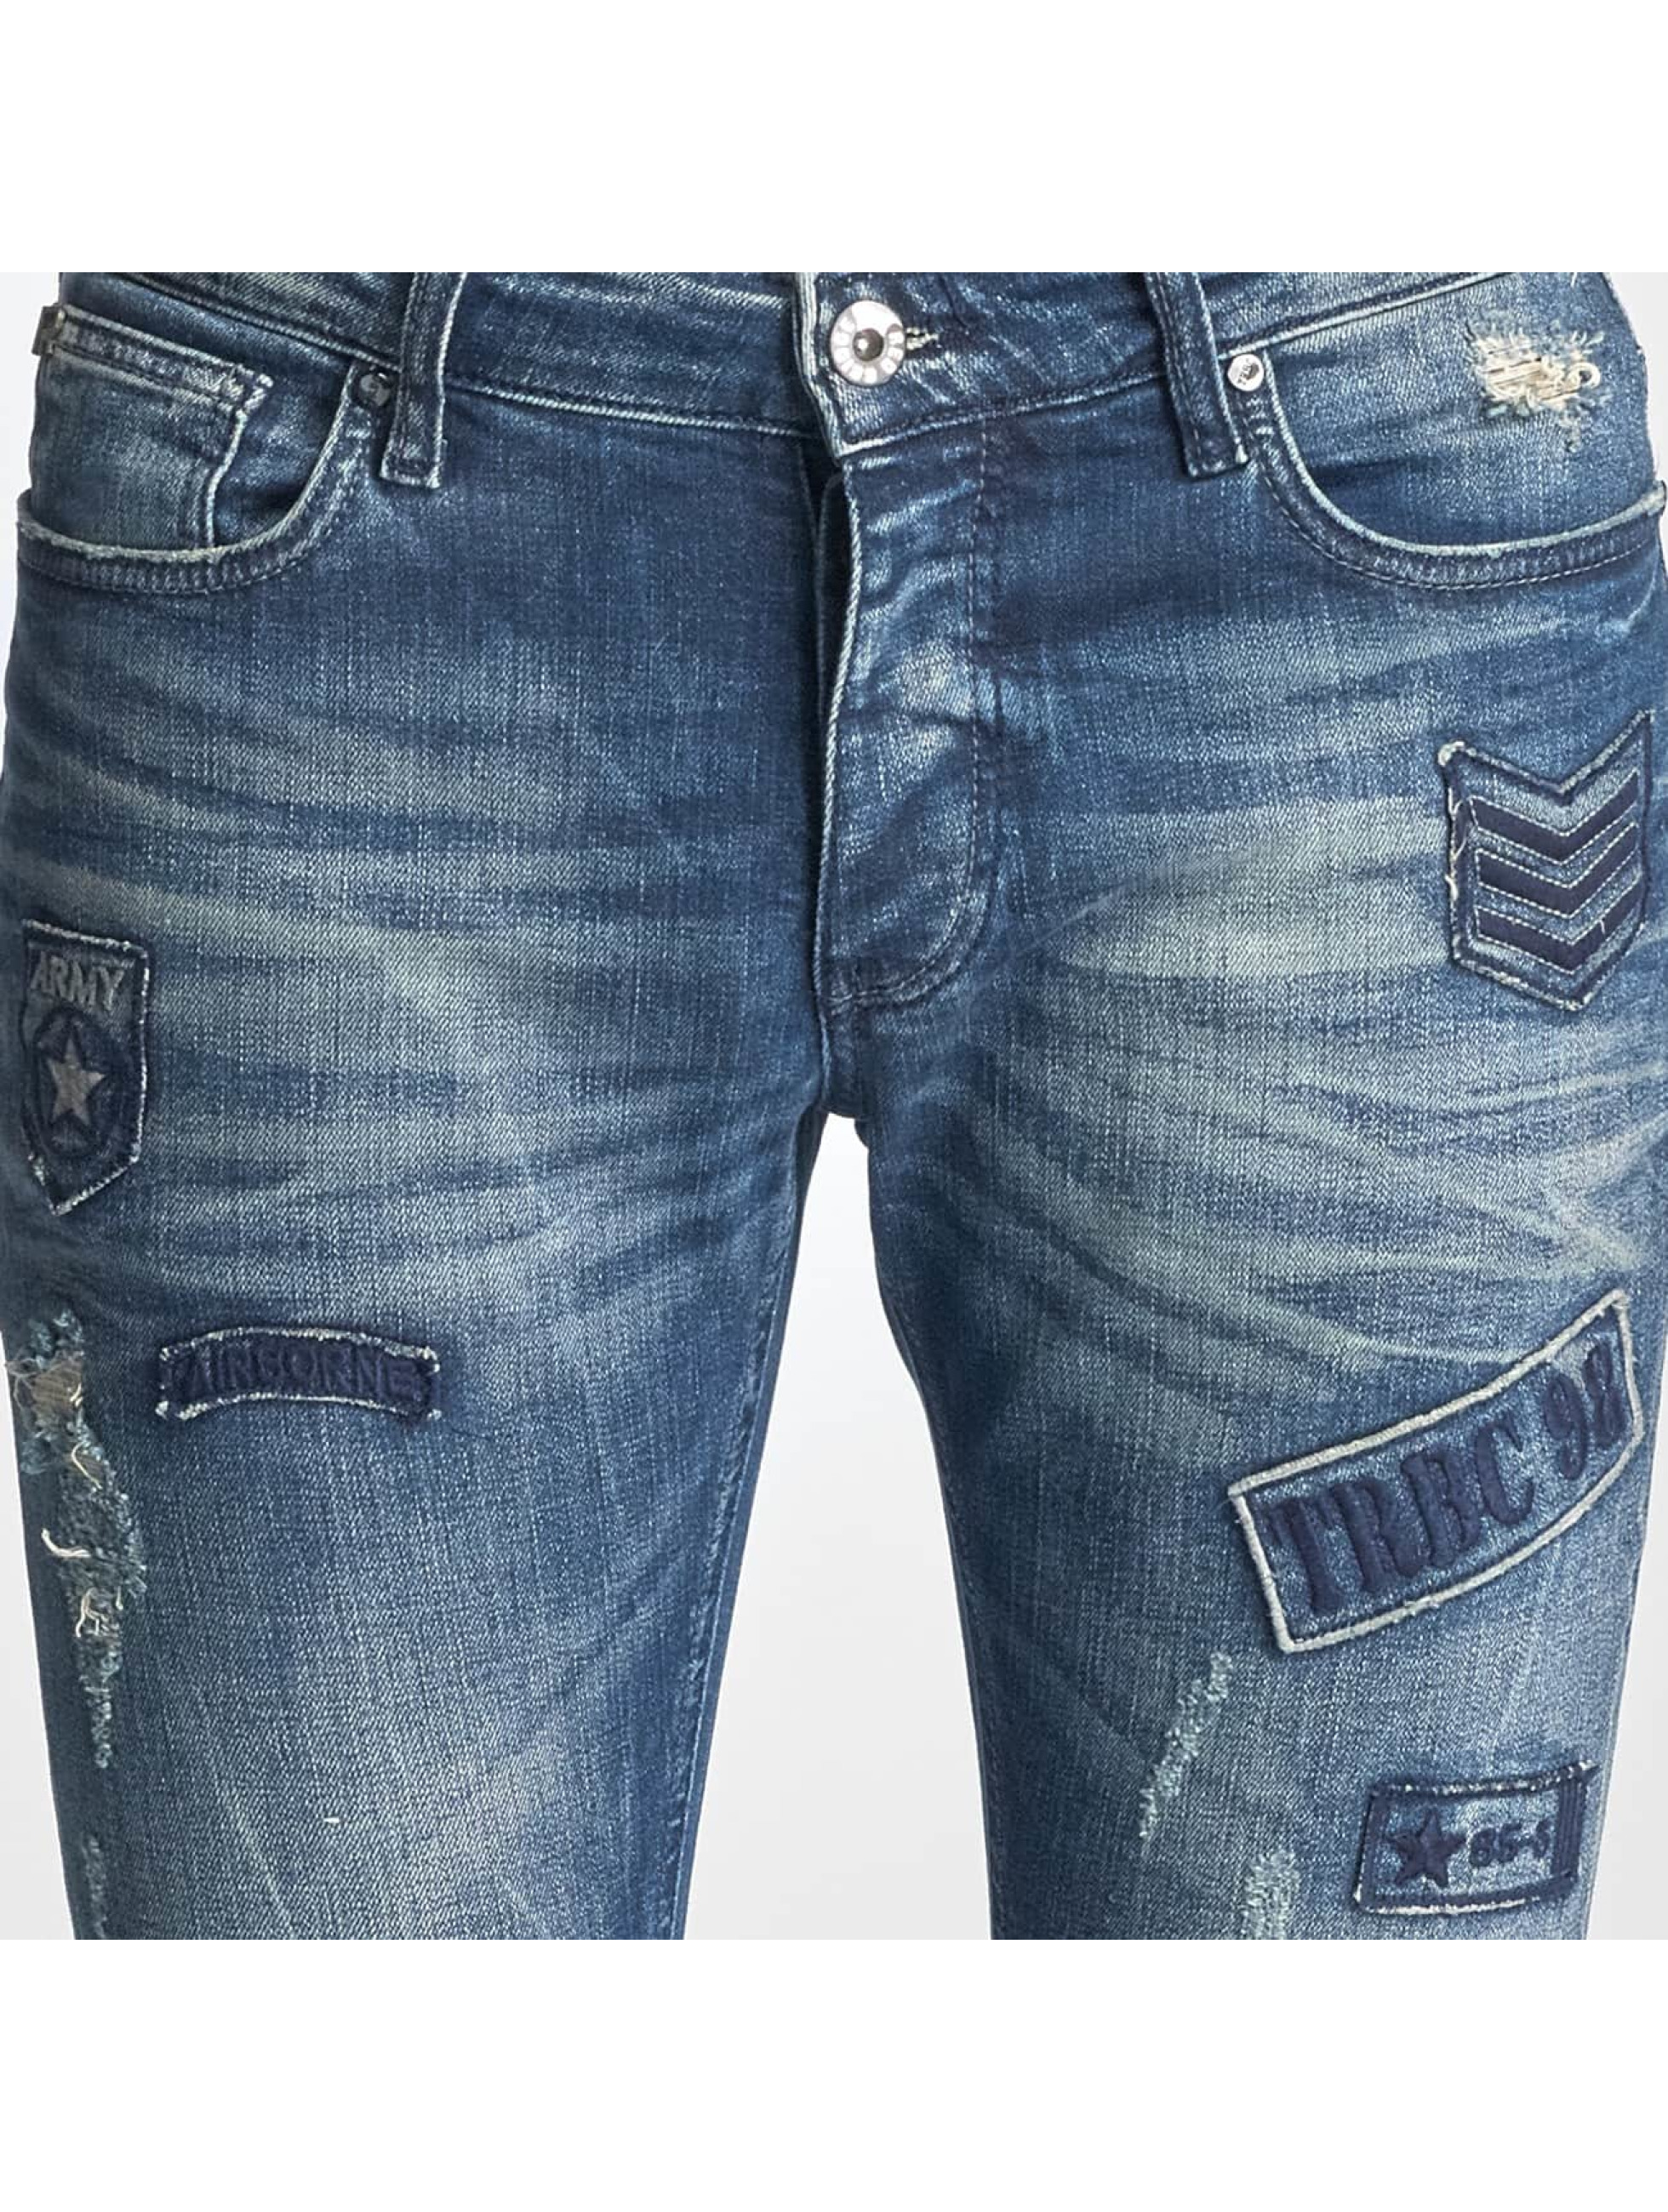 Red Bridge Skinny jeans TRBC 98 blauw